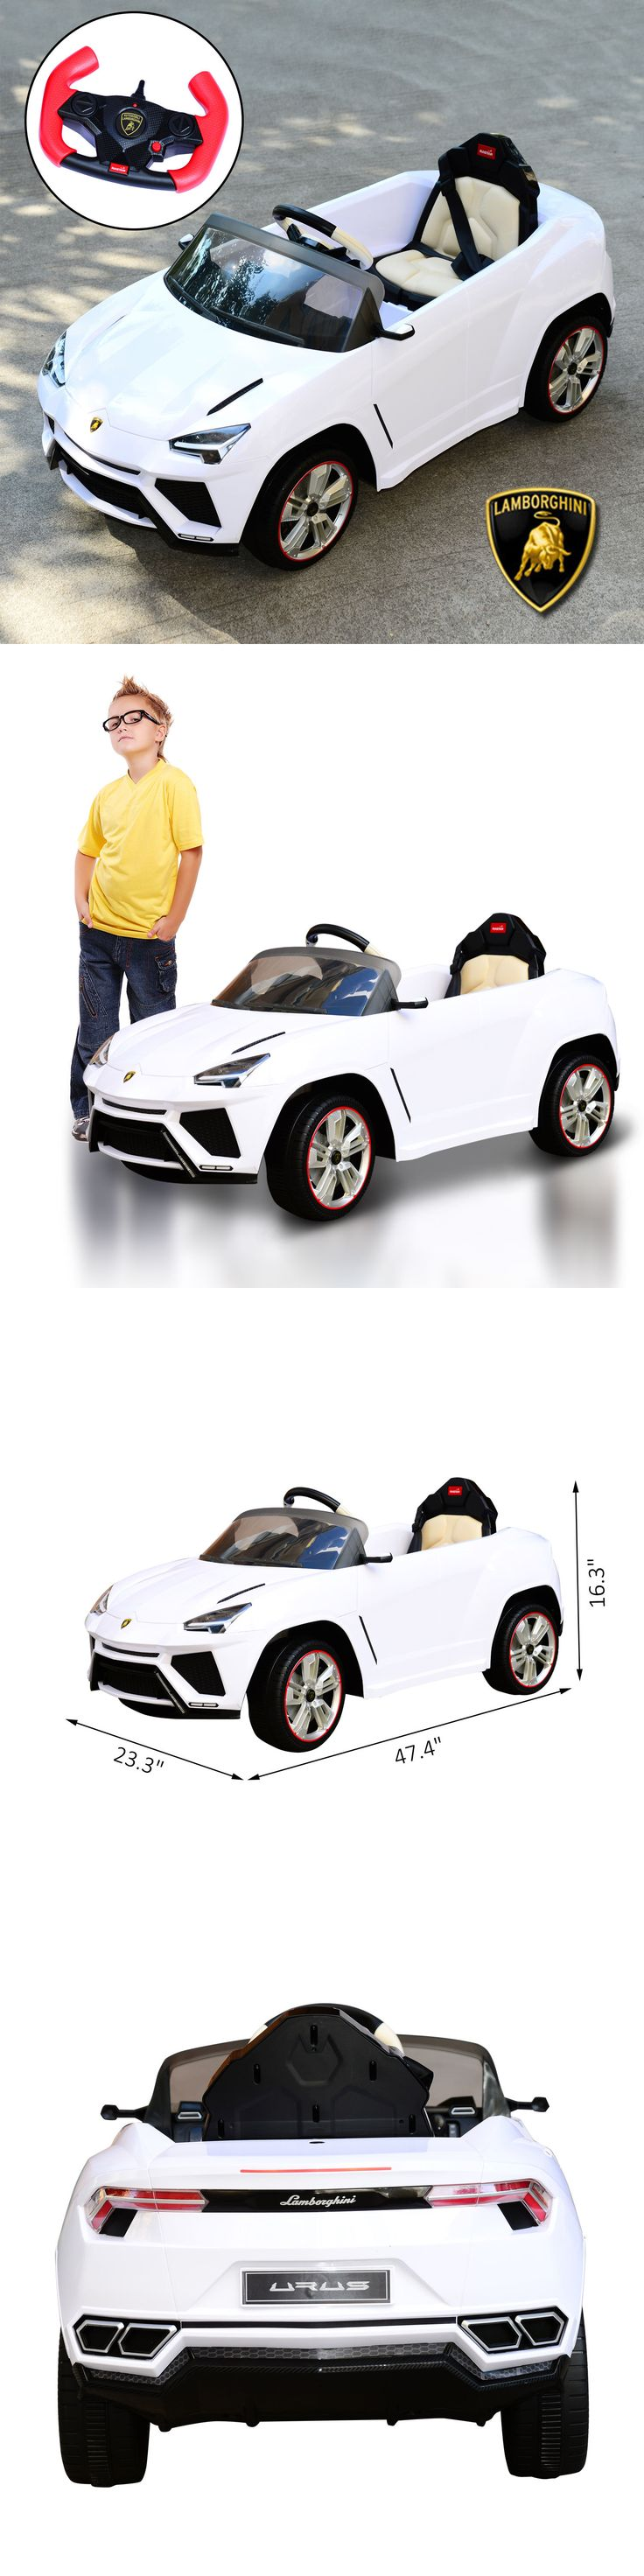 Ride On Toys and Accessories 145944: Lamborghini 12V Double Engine Kids Ride On Toy Car Electric Remote Contol White -> BUY IT NOW ONLY: $229.99 on eBay!